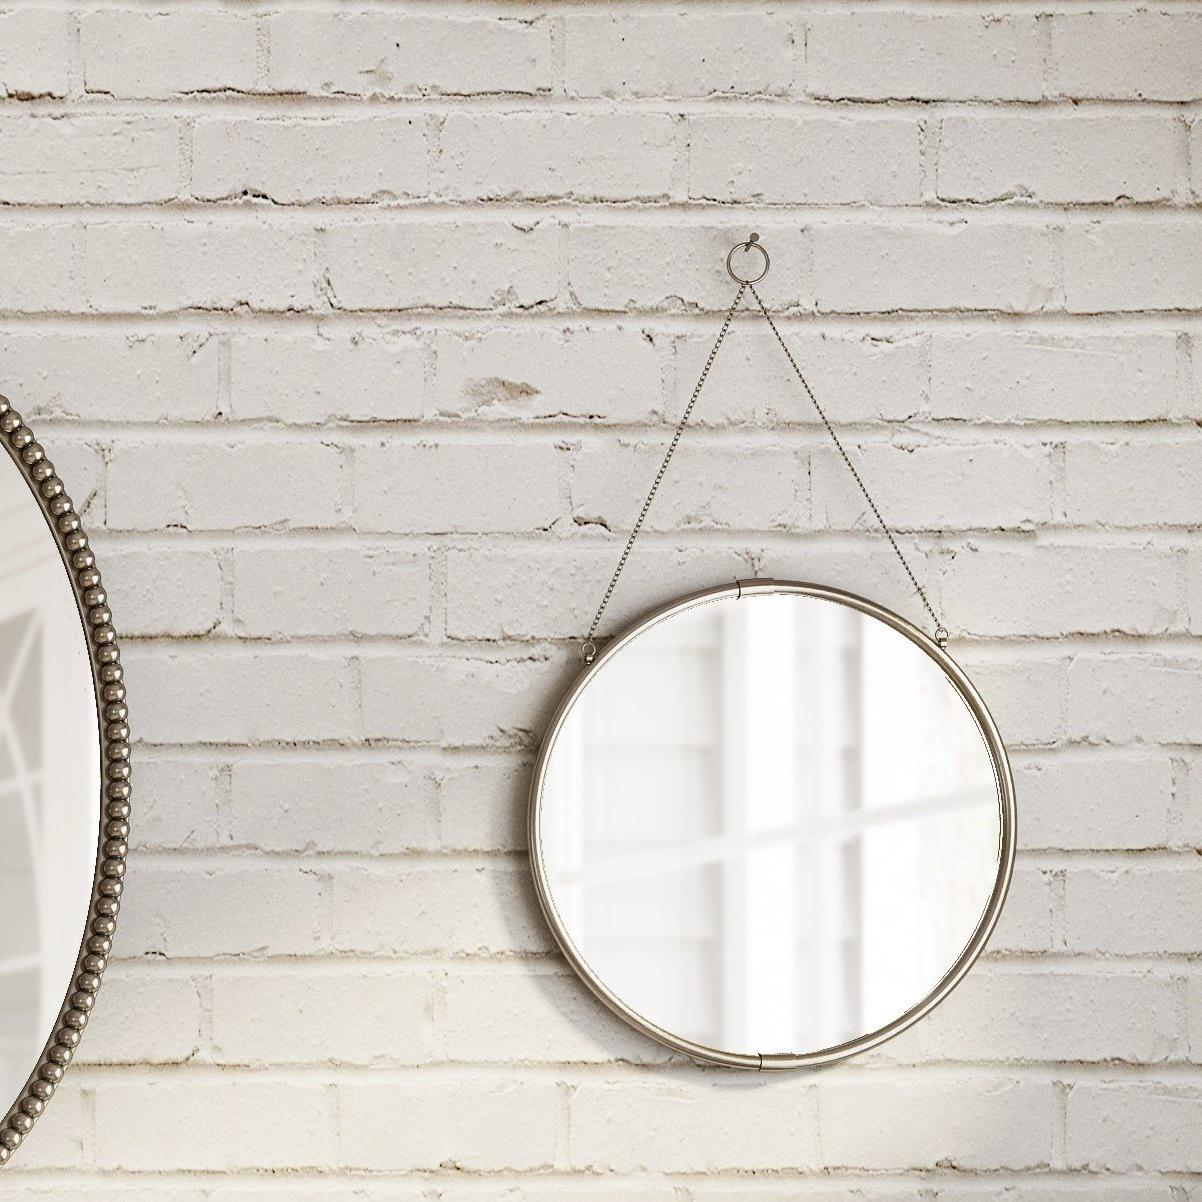 Brea Decorative Round Hanging Modern & Contemporary Wall Mirror Inside Most Up To Date Modern Decorative Wall Mirrors (View 4 of 20)